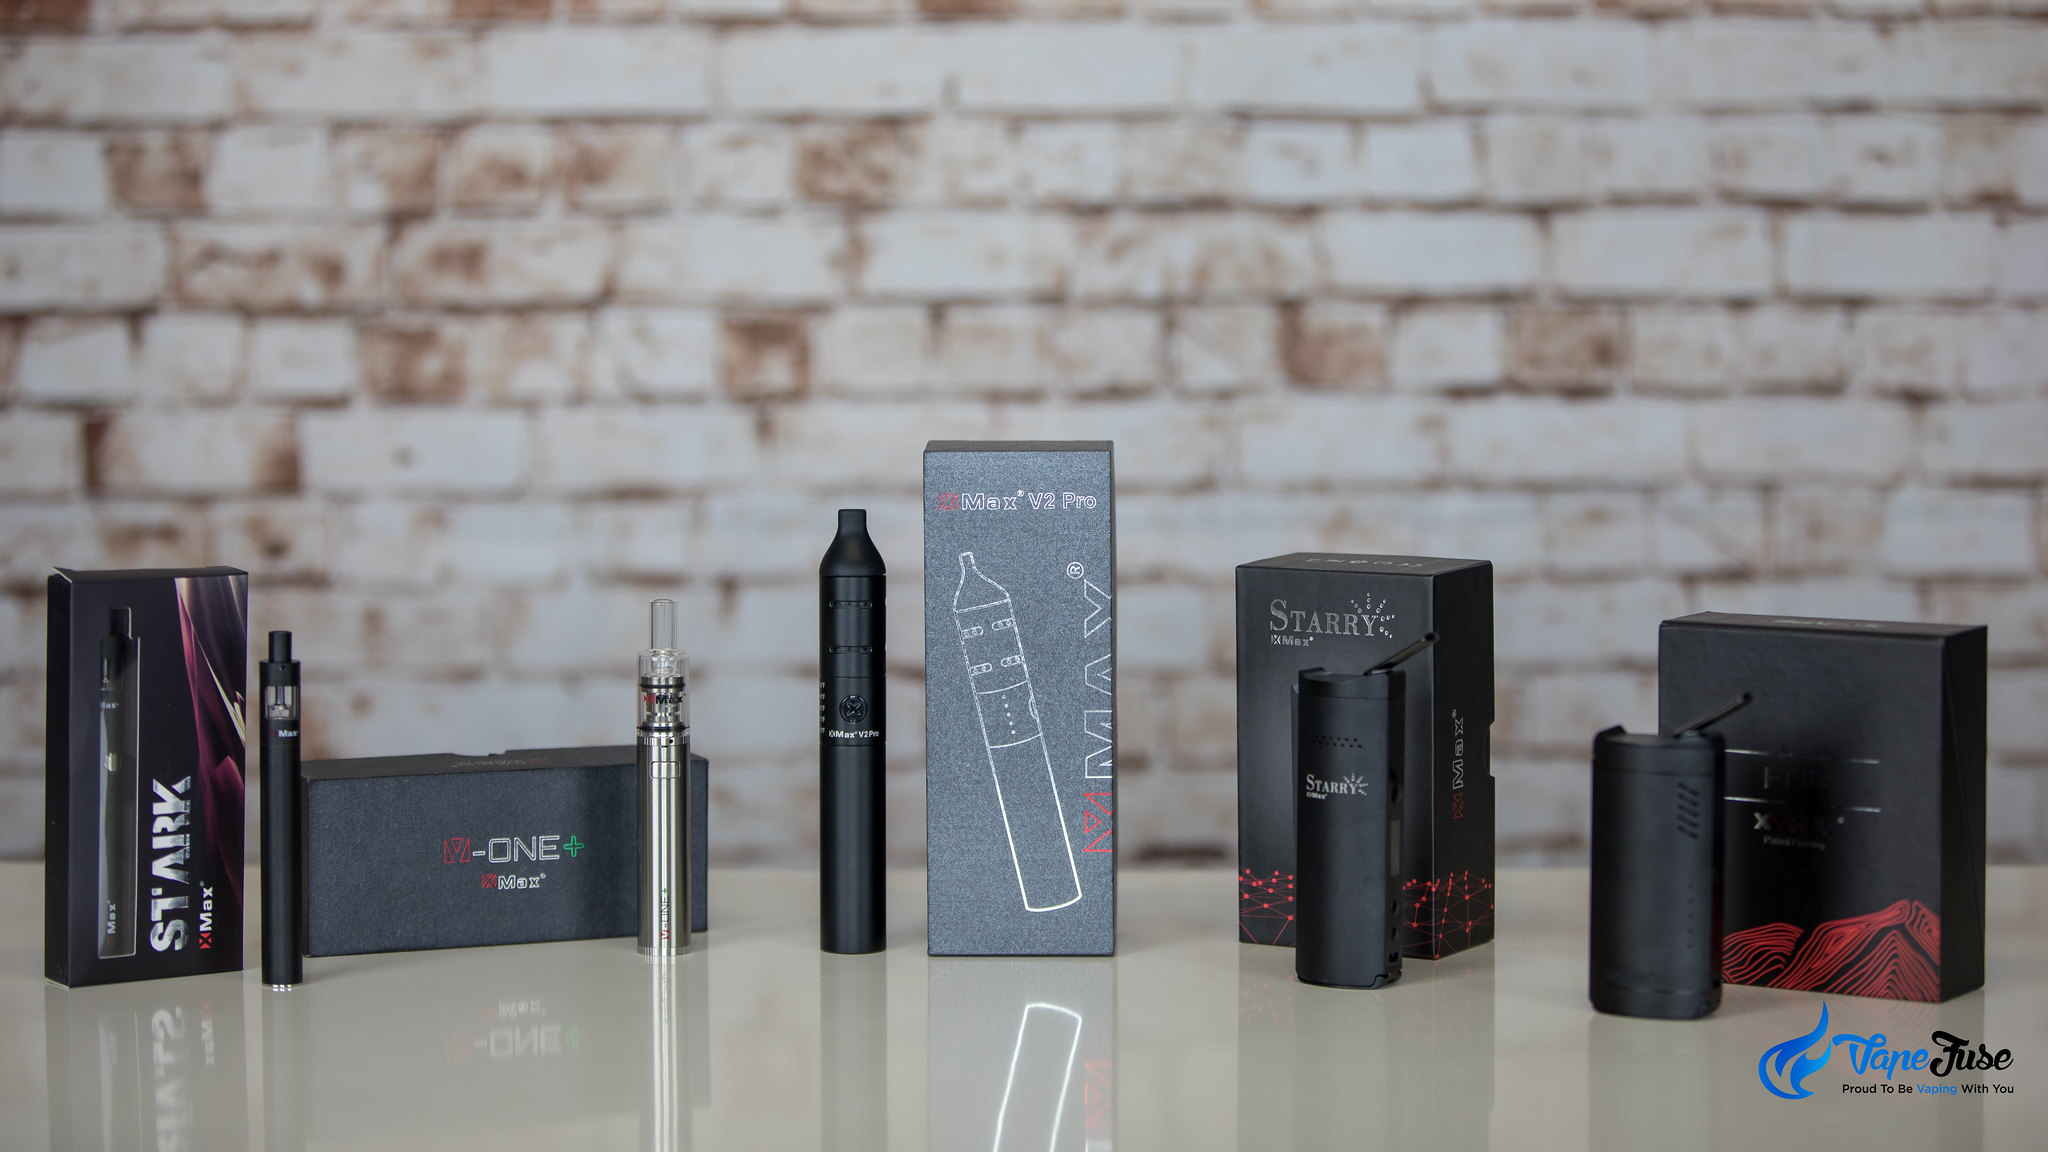 XMax V2 Pro Portable Vaporizer with other Xmax vapes